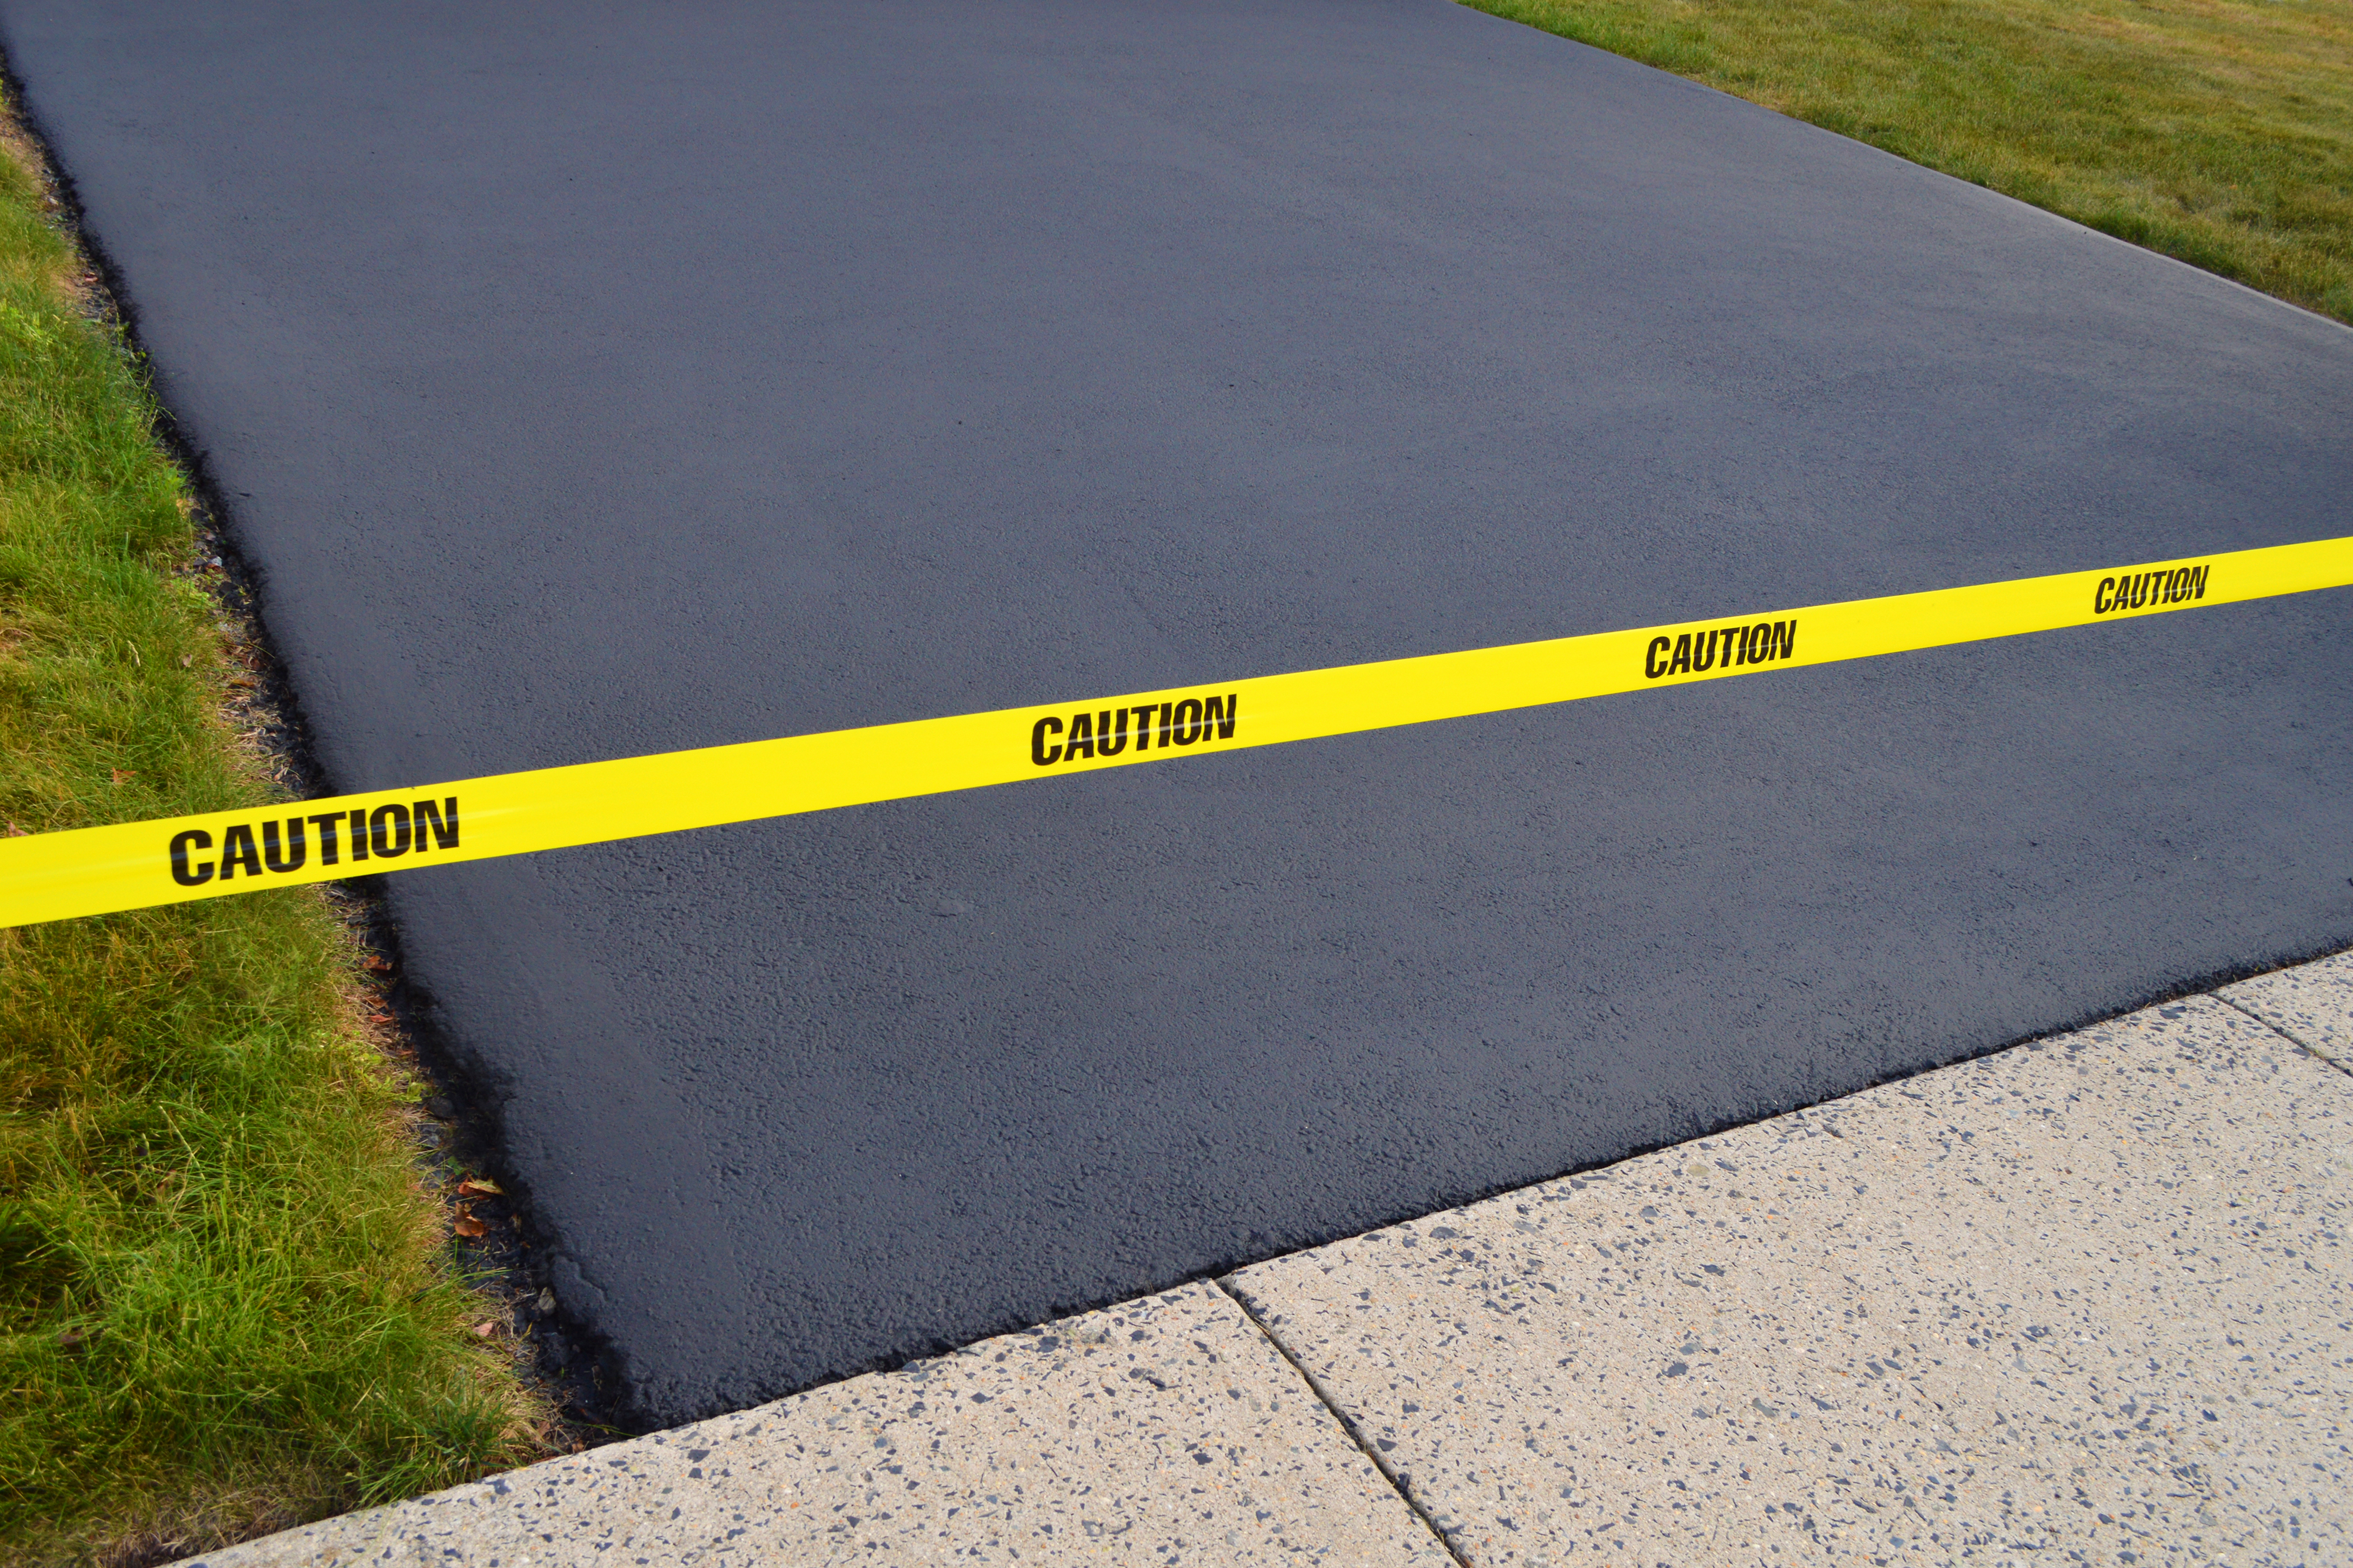 Caution tape at the end of a newly sealcoated driveway.